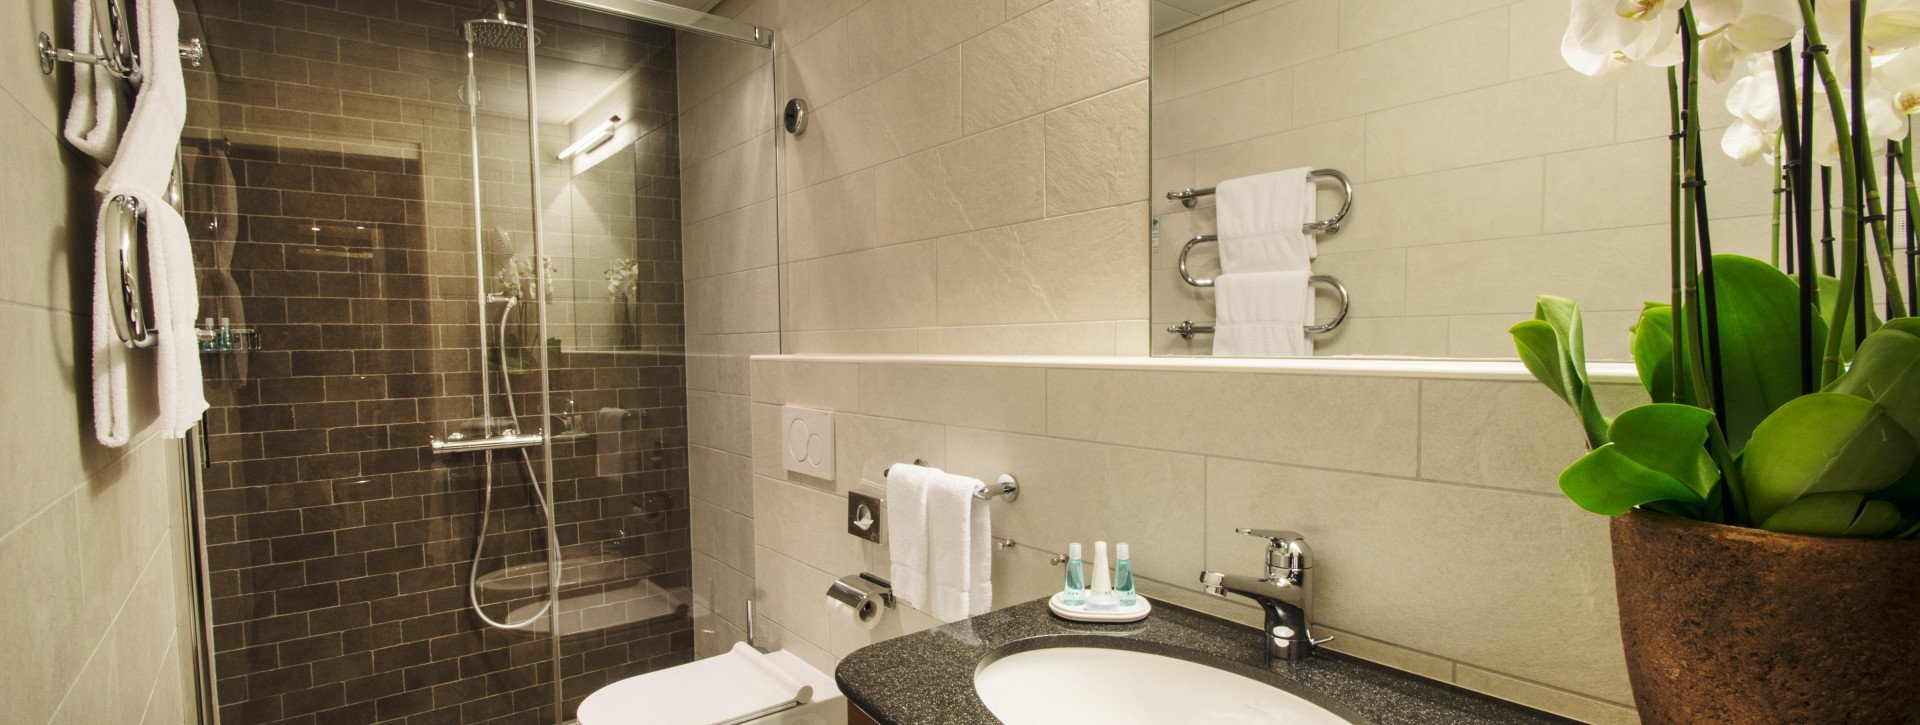 Bathroom with large mirror and shower